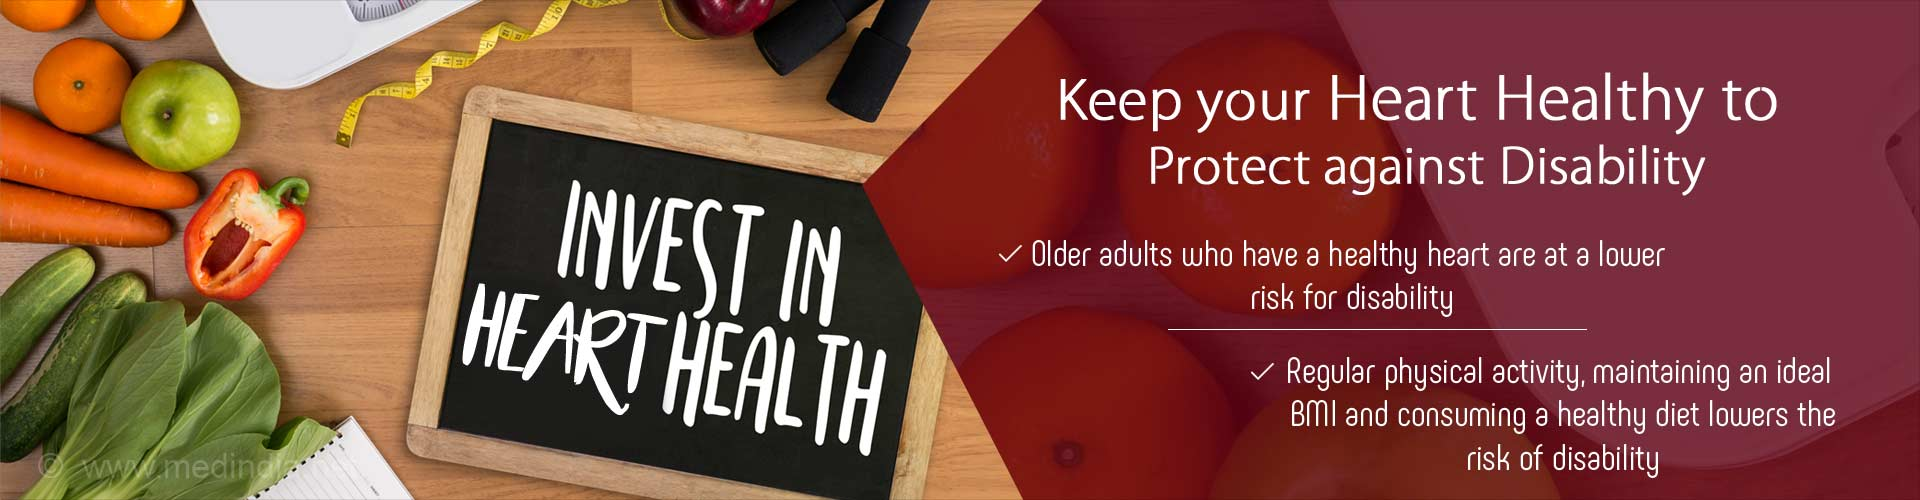 Keep your heart healthy to protect against disability - Older adults who have a healthy heart are at a lower risk for disability - Regular physical activity, maintaining an ideal BMI and consuming a healthy diet lowers the risk of disability